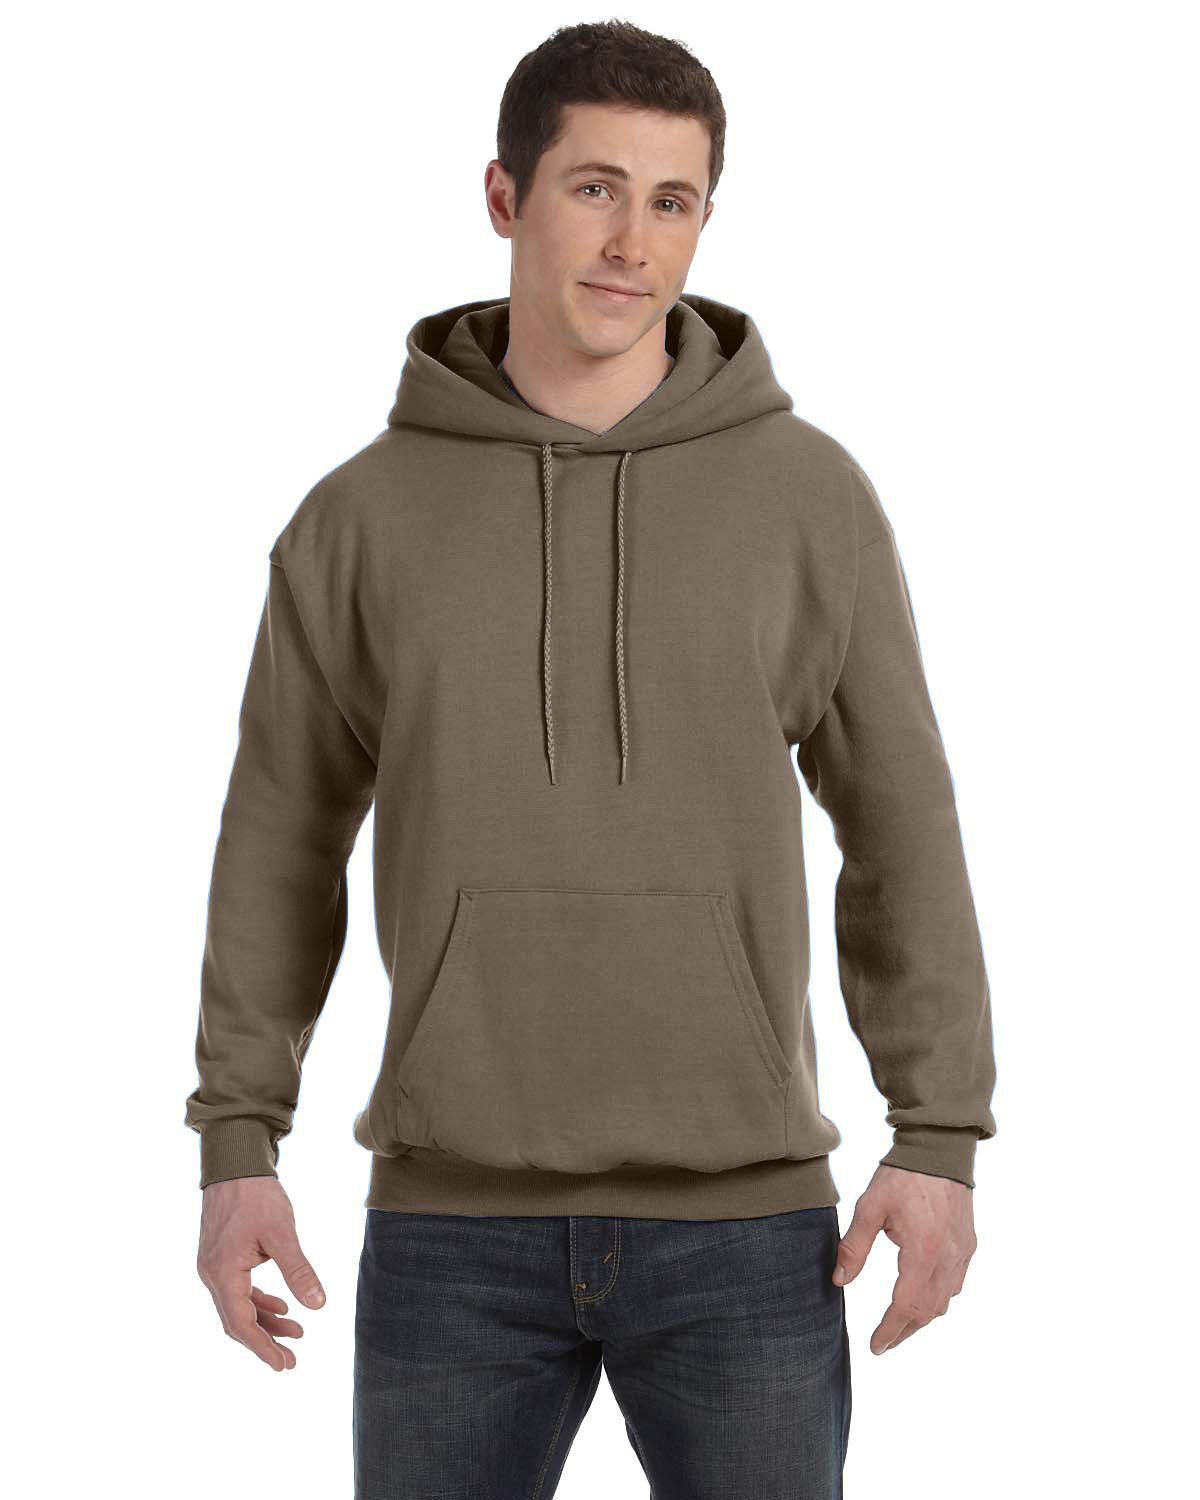 Hanes Unisex Ecosmart® 50/50 Pullover Hooded Sweatshirt ARMY BROWN